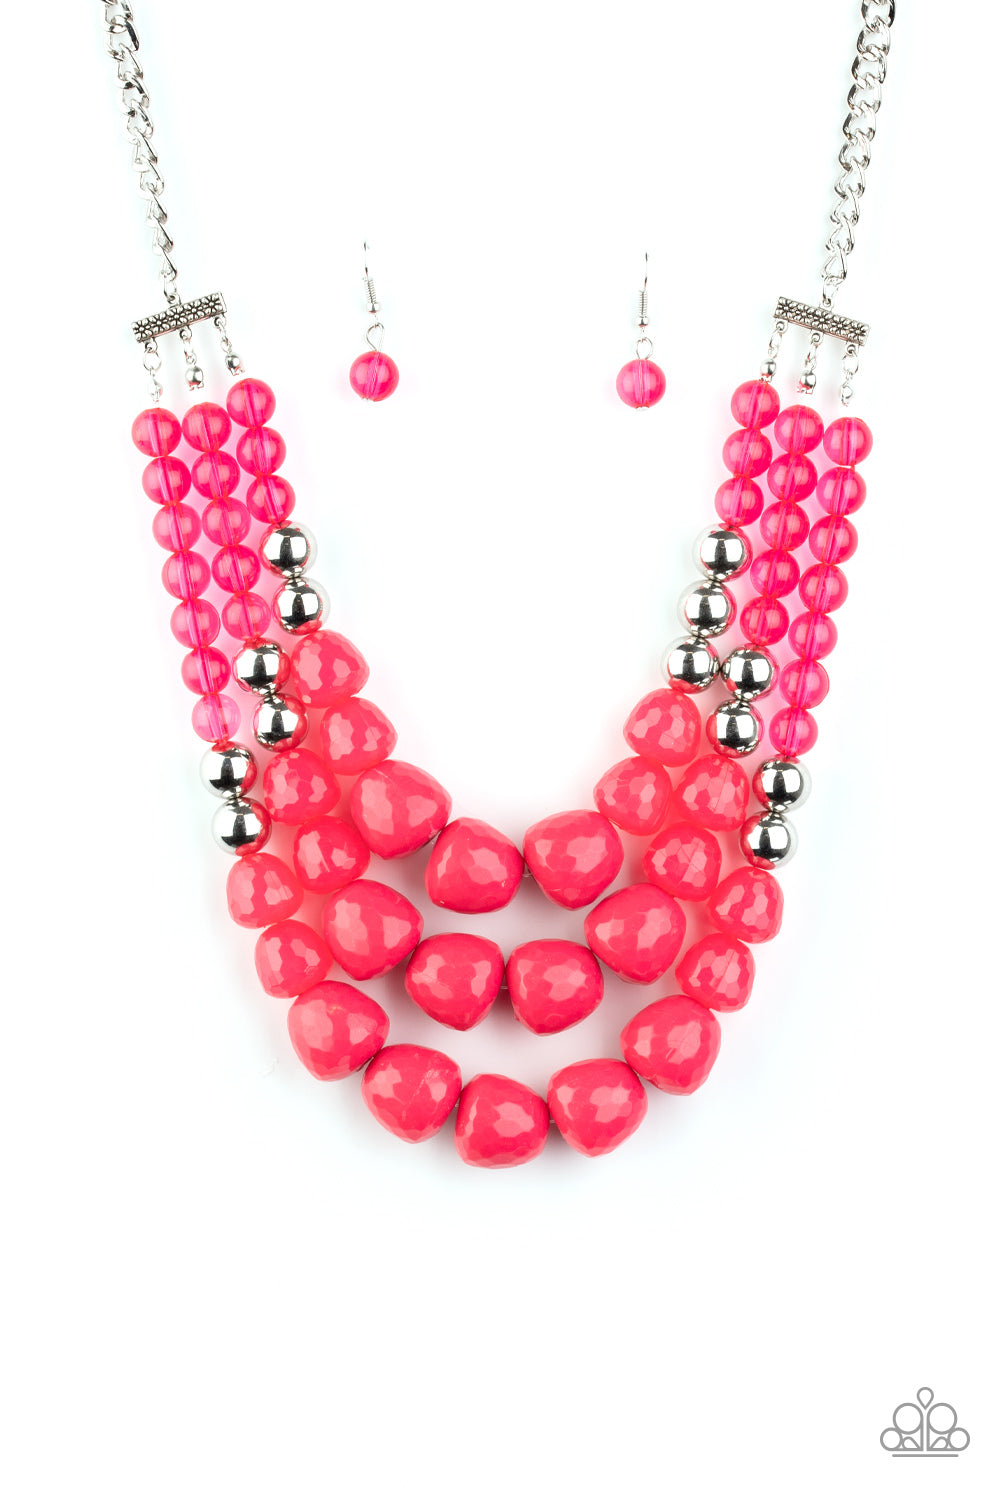 five-dollar-jewelry-forbidden-fruit-pink-necklace-paparazzi-accessories